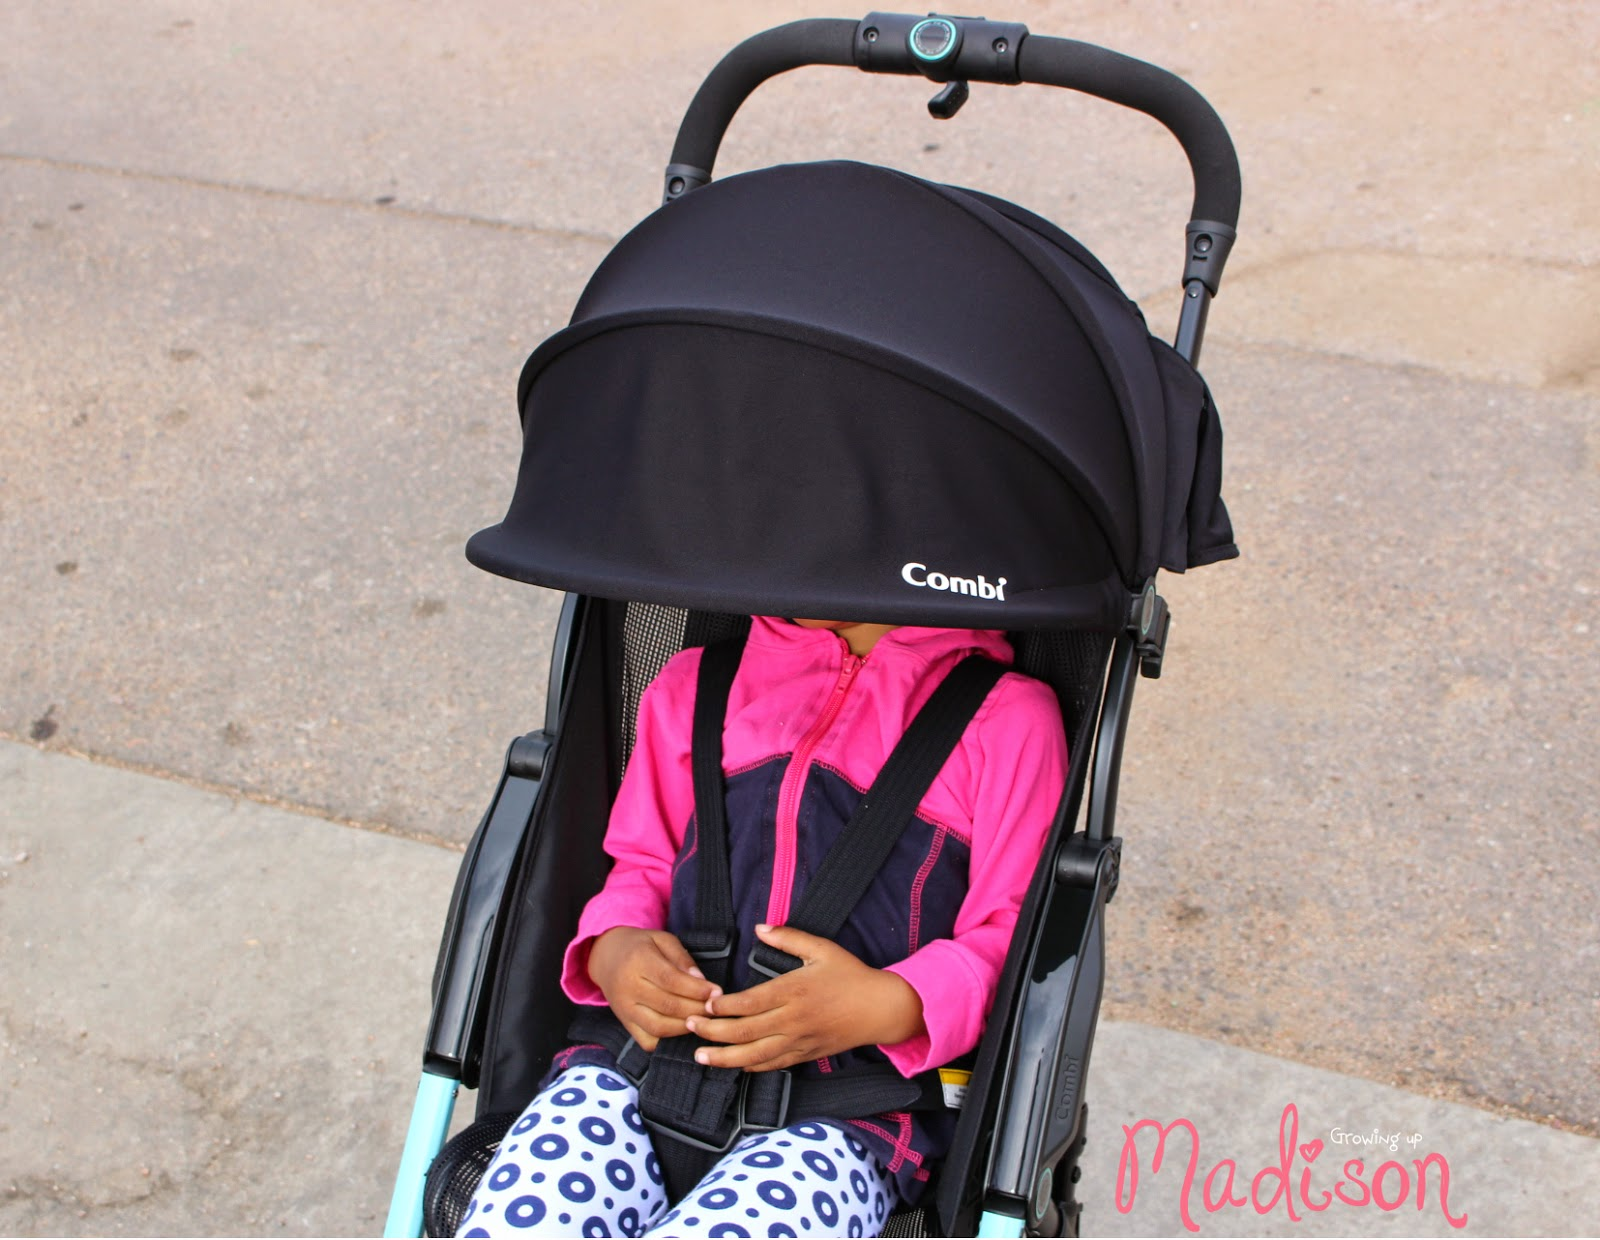 The F2 Stroller by Combi - Light and Convenient - AnnMarie John